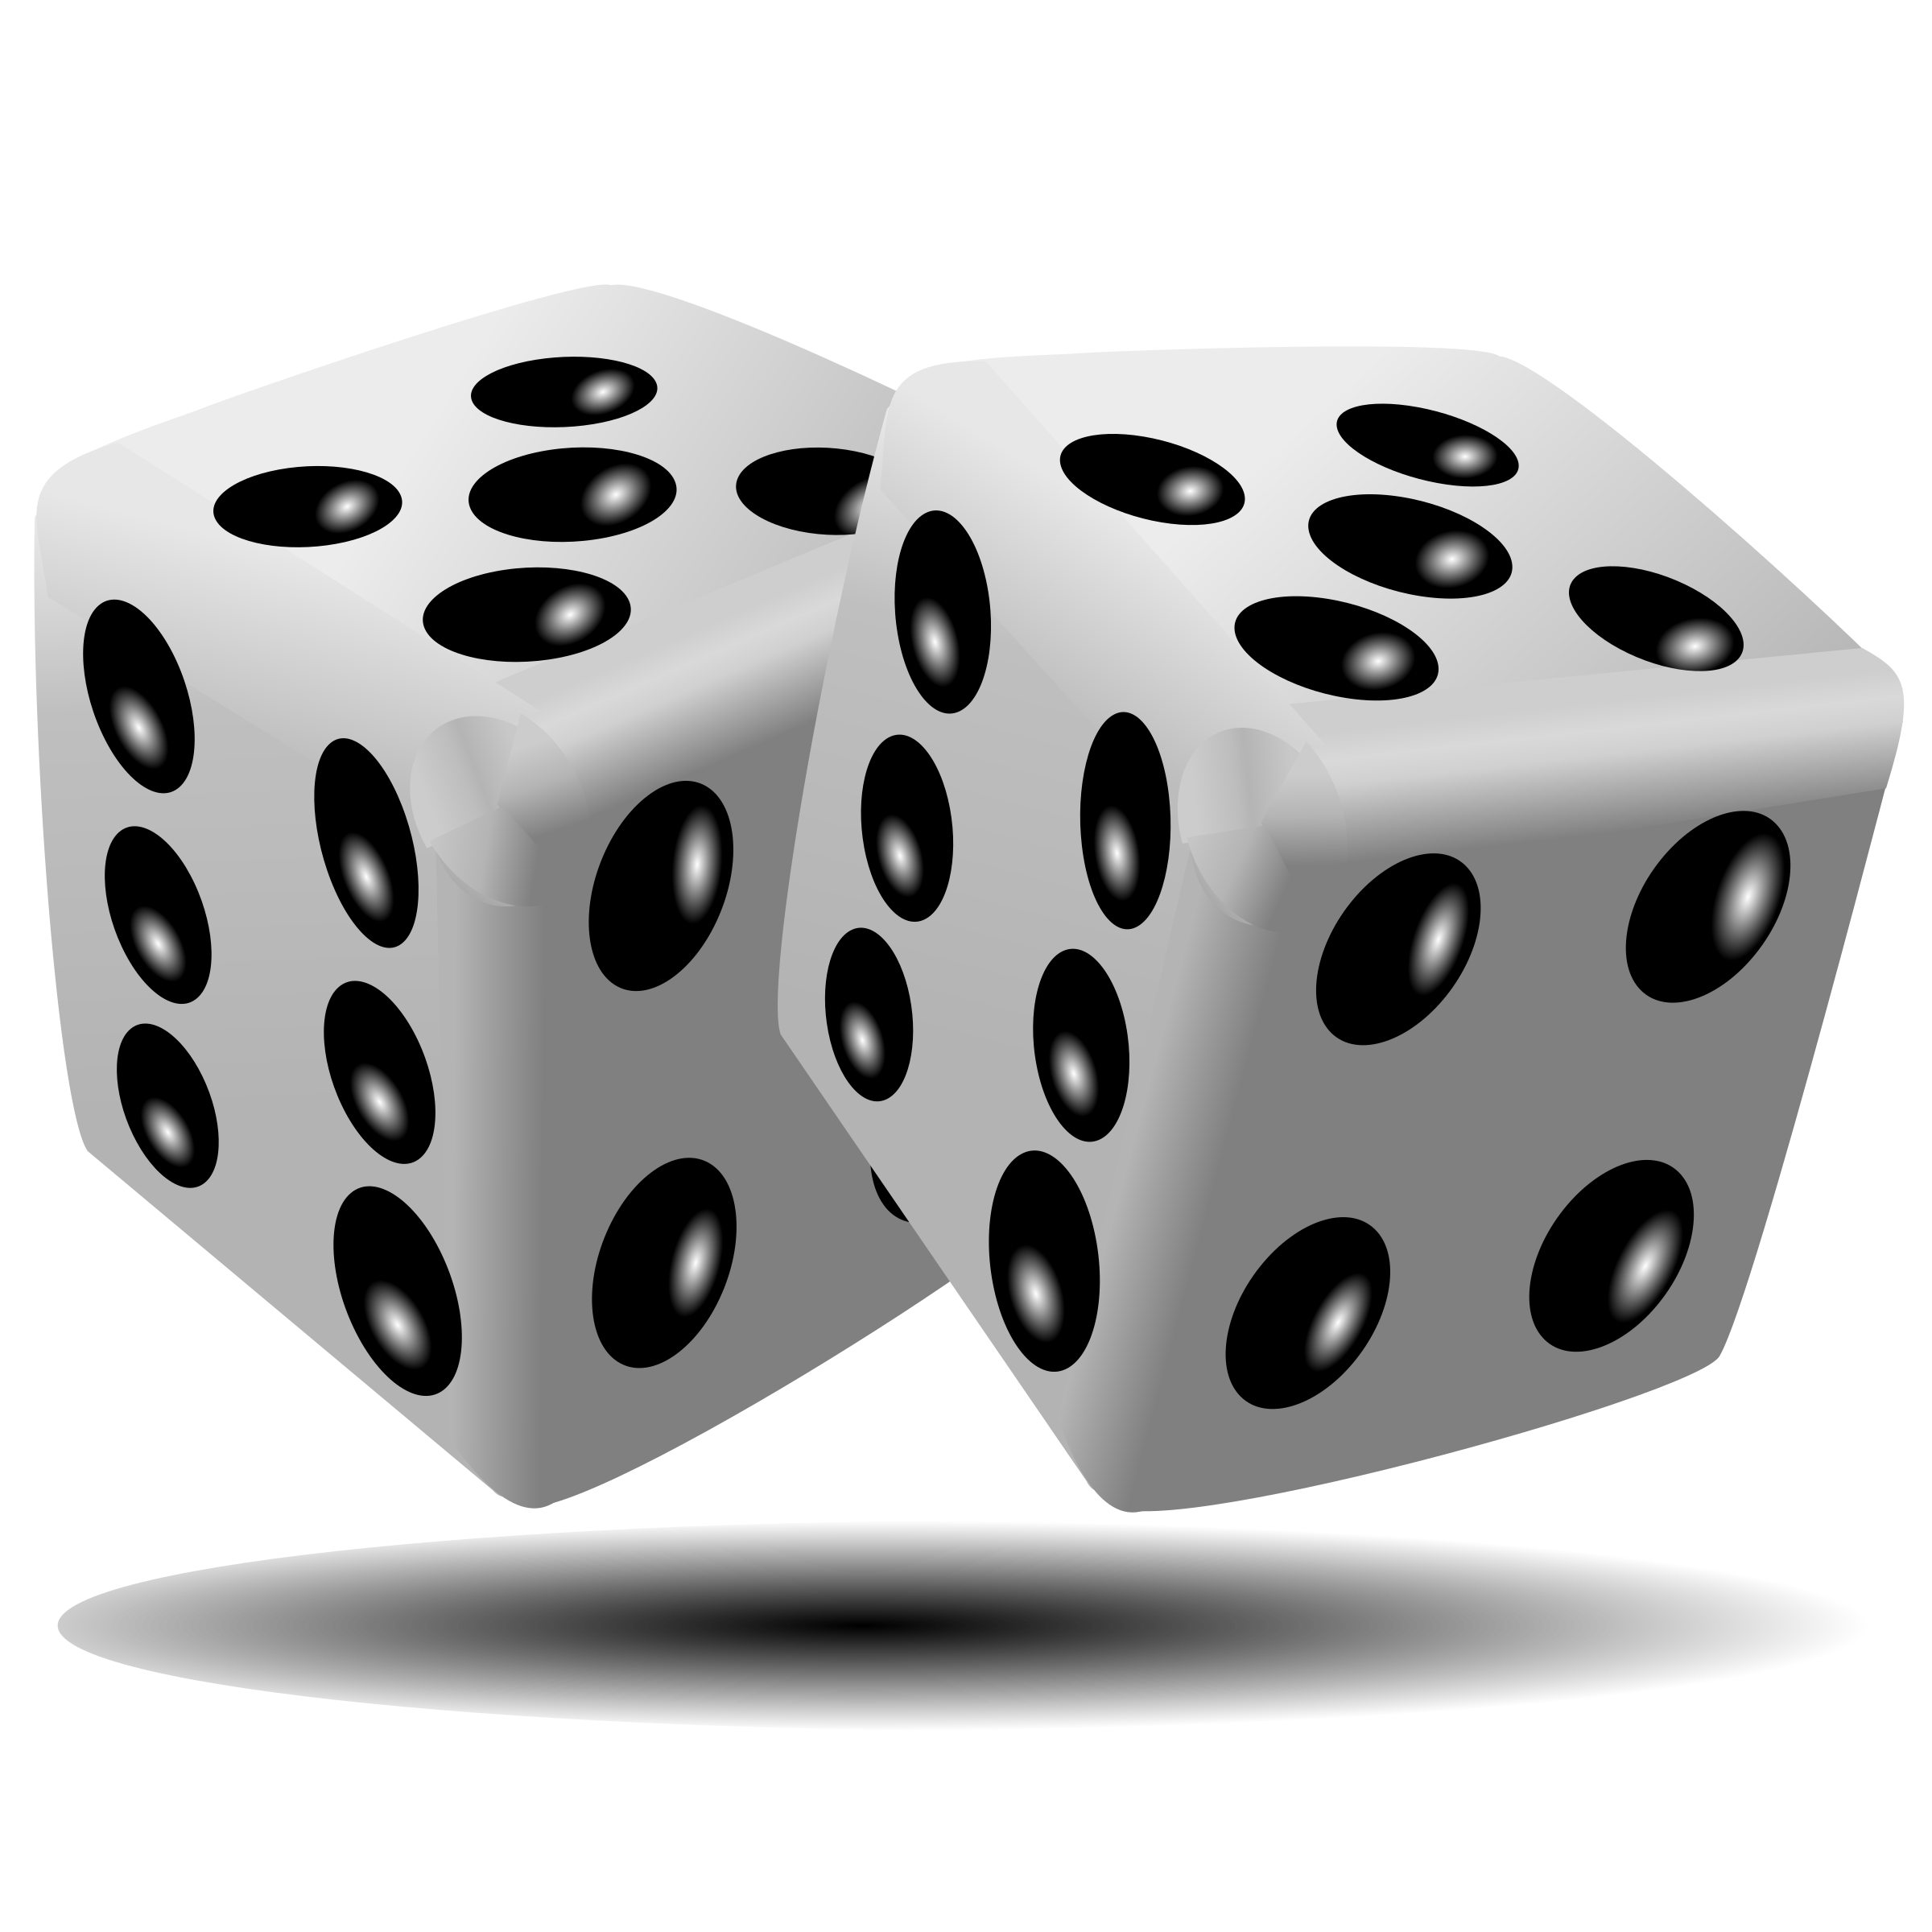 White dice png. Black and transparent images